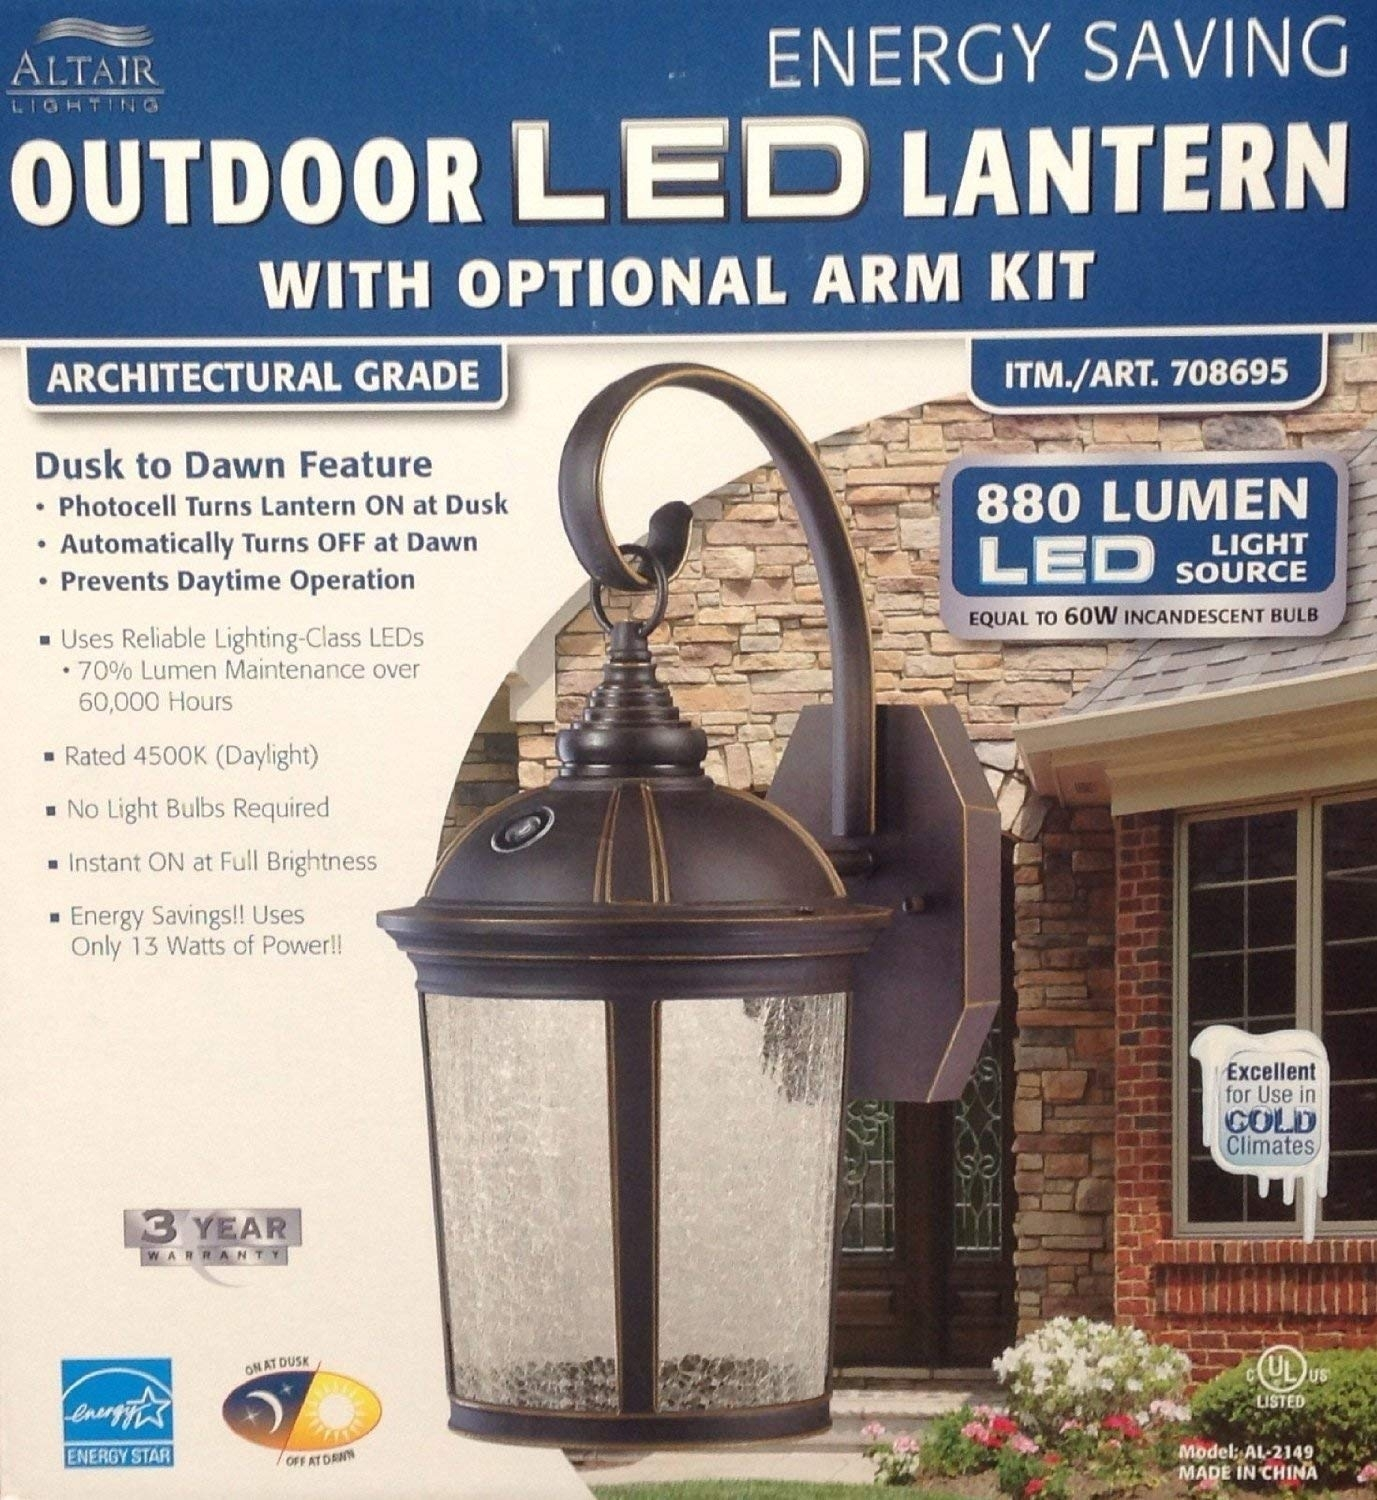 Altair Lighting Led Outdoor Lantern With Optional Arm Kit: Amazon.ca pertaining to Outdoor Lanterns With Photocell (Image 1 of 20)